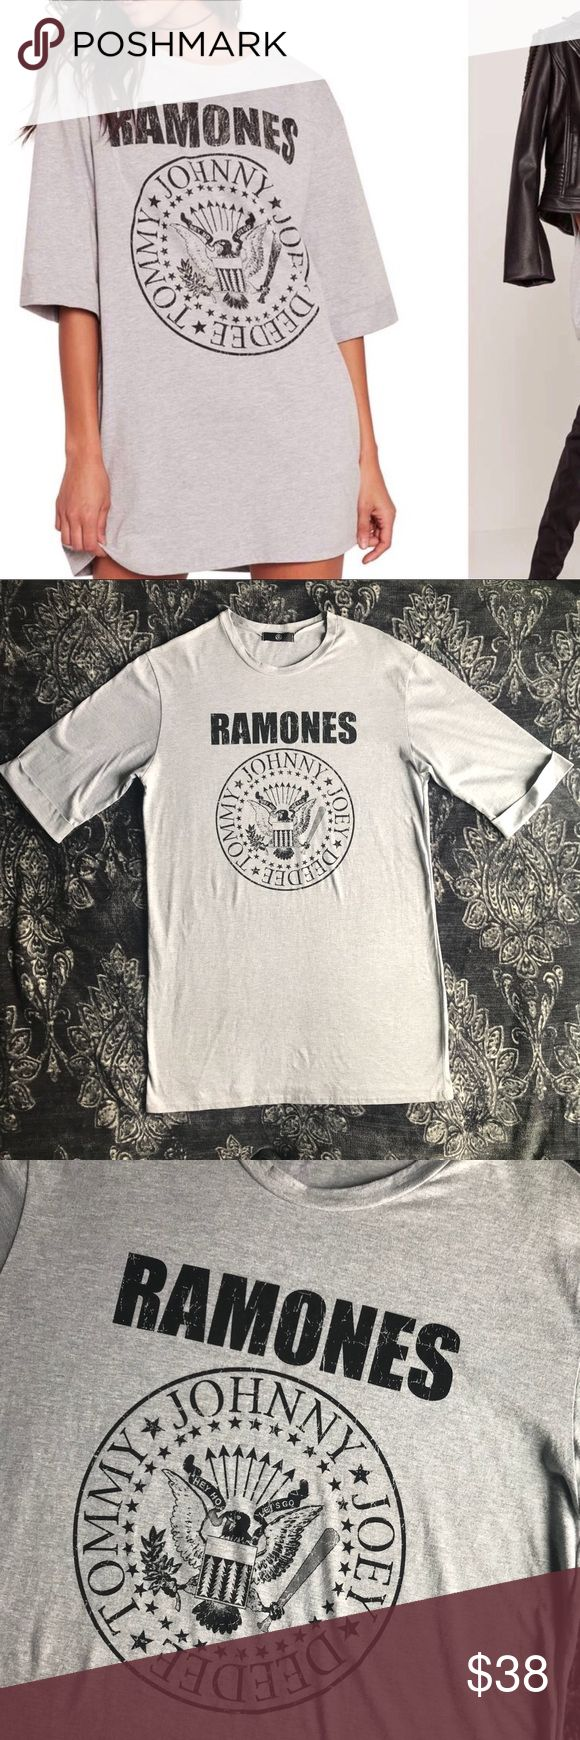 Missguided Grey Ramones T-Shirt Dress US Size 4 New without tag. Inner materials and size tag has been cut out. I've sold one of these before and the measurements are the same therefore I am able to say this is a US Size 4. Grey t-shirt dress with cracked Ramones graphic, crewneck and cuffed elbow sleeves.   Approximate measurements: 33 inch length, 21 inches wide from pit to pit while laying flat. Missguided Dresses